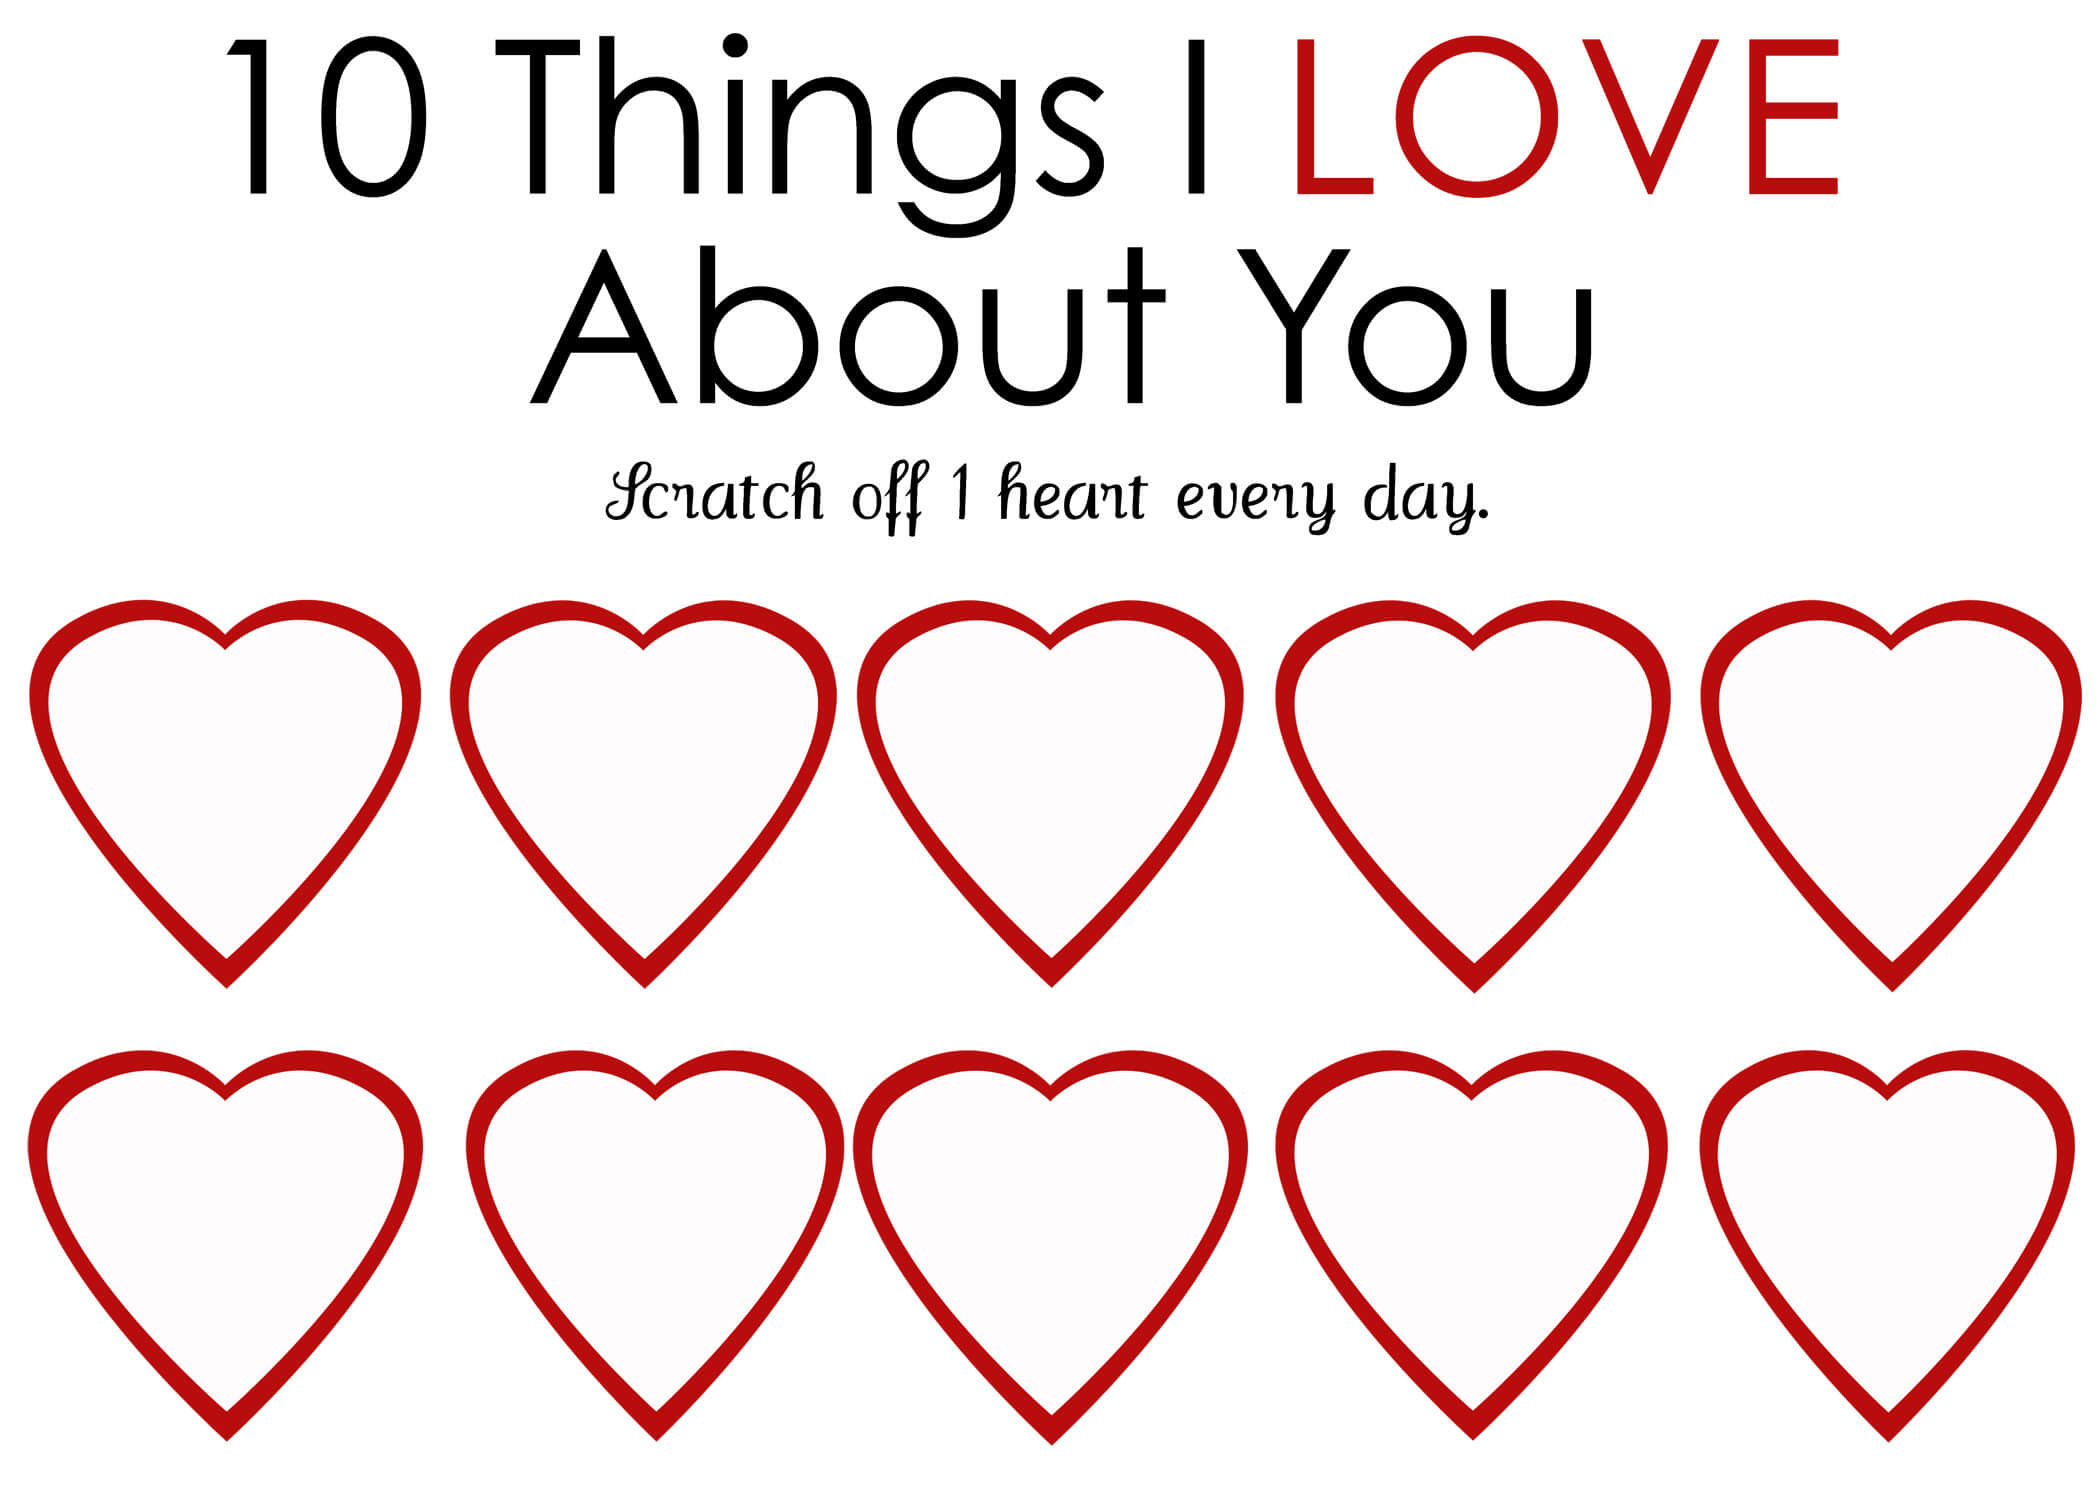 Printable Scratch Off Card {Easy Peasy Valentine} For Scratch Off Card Templates